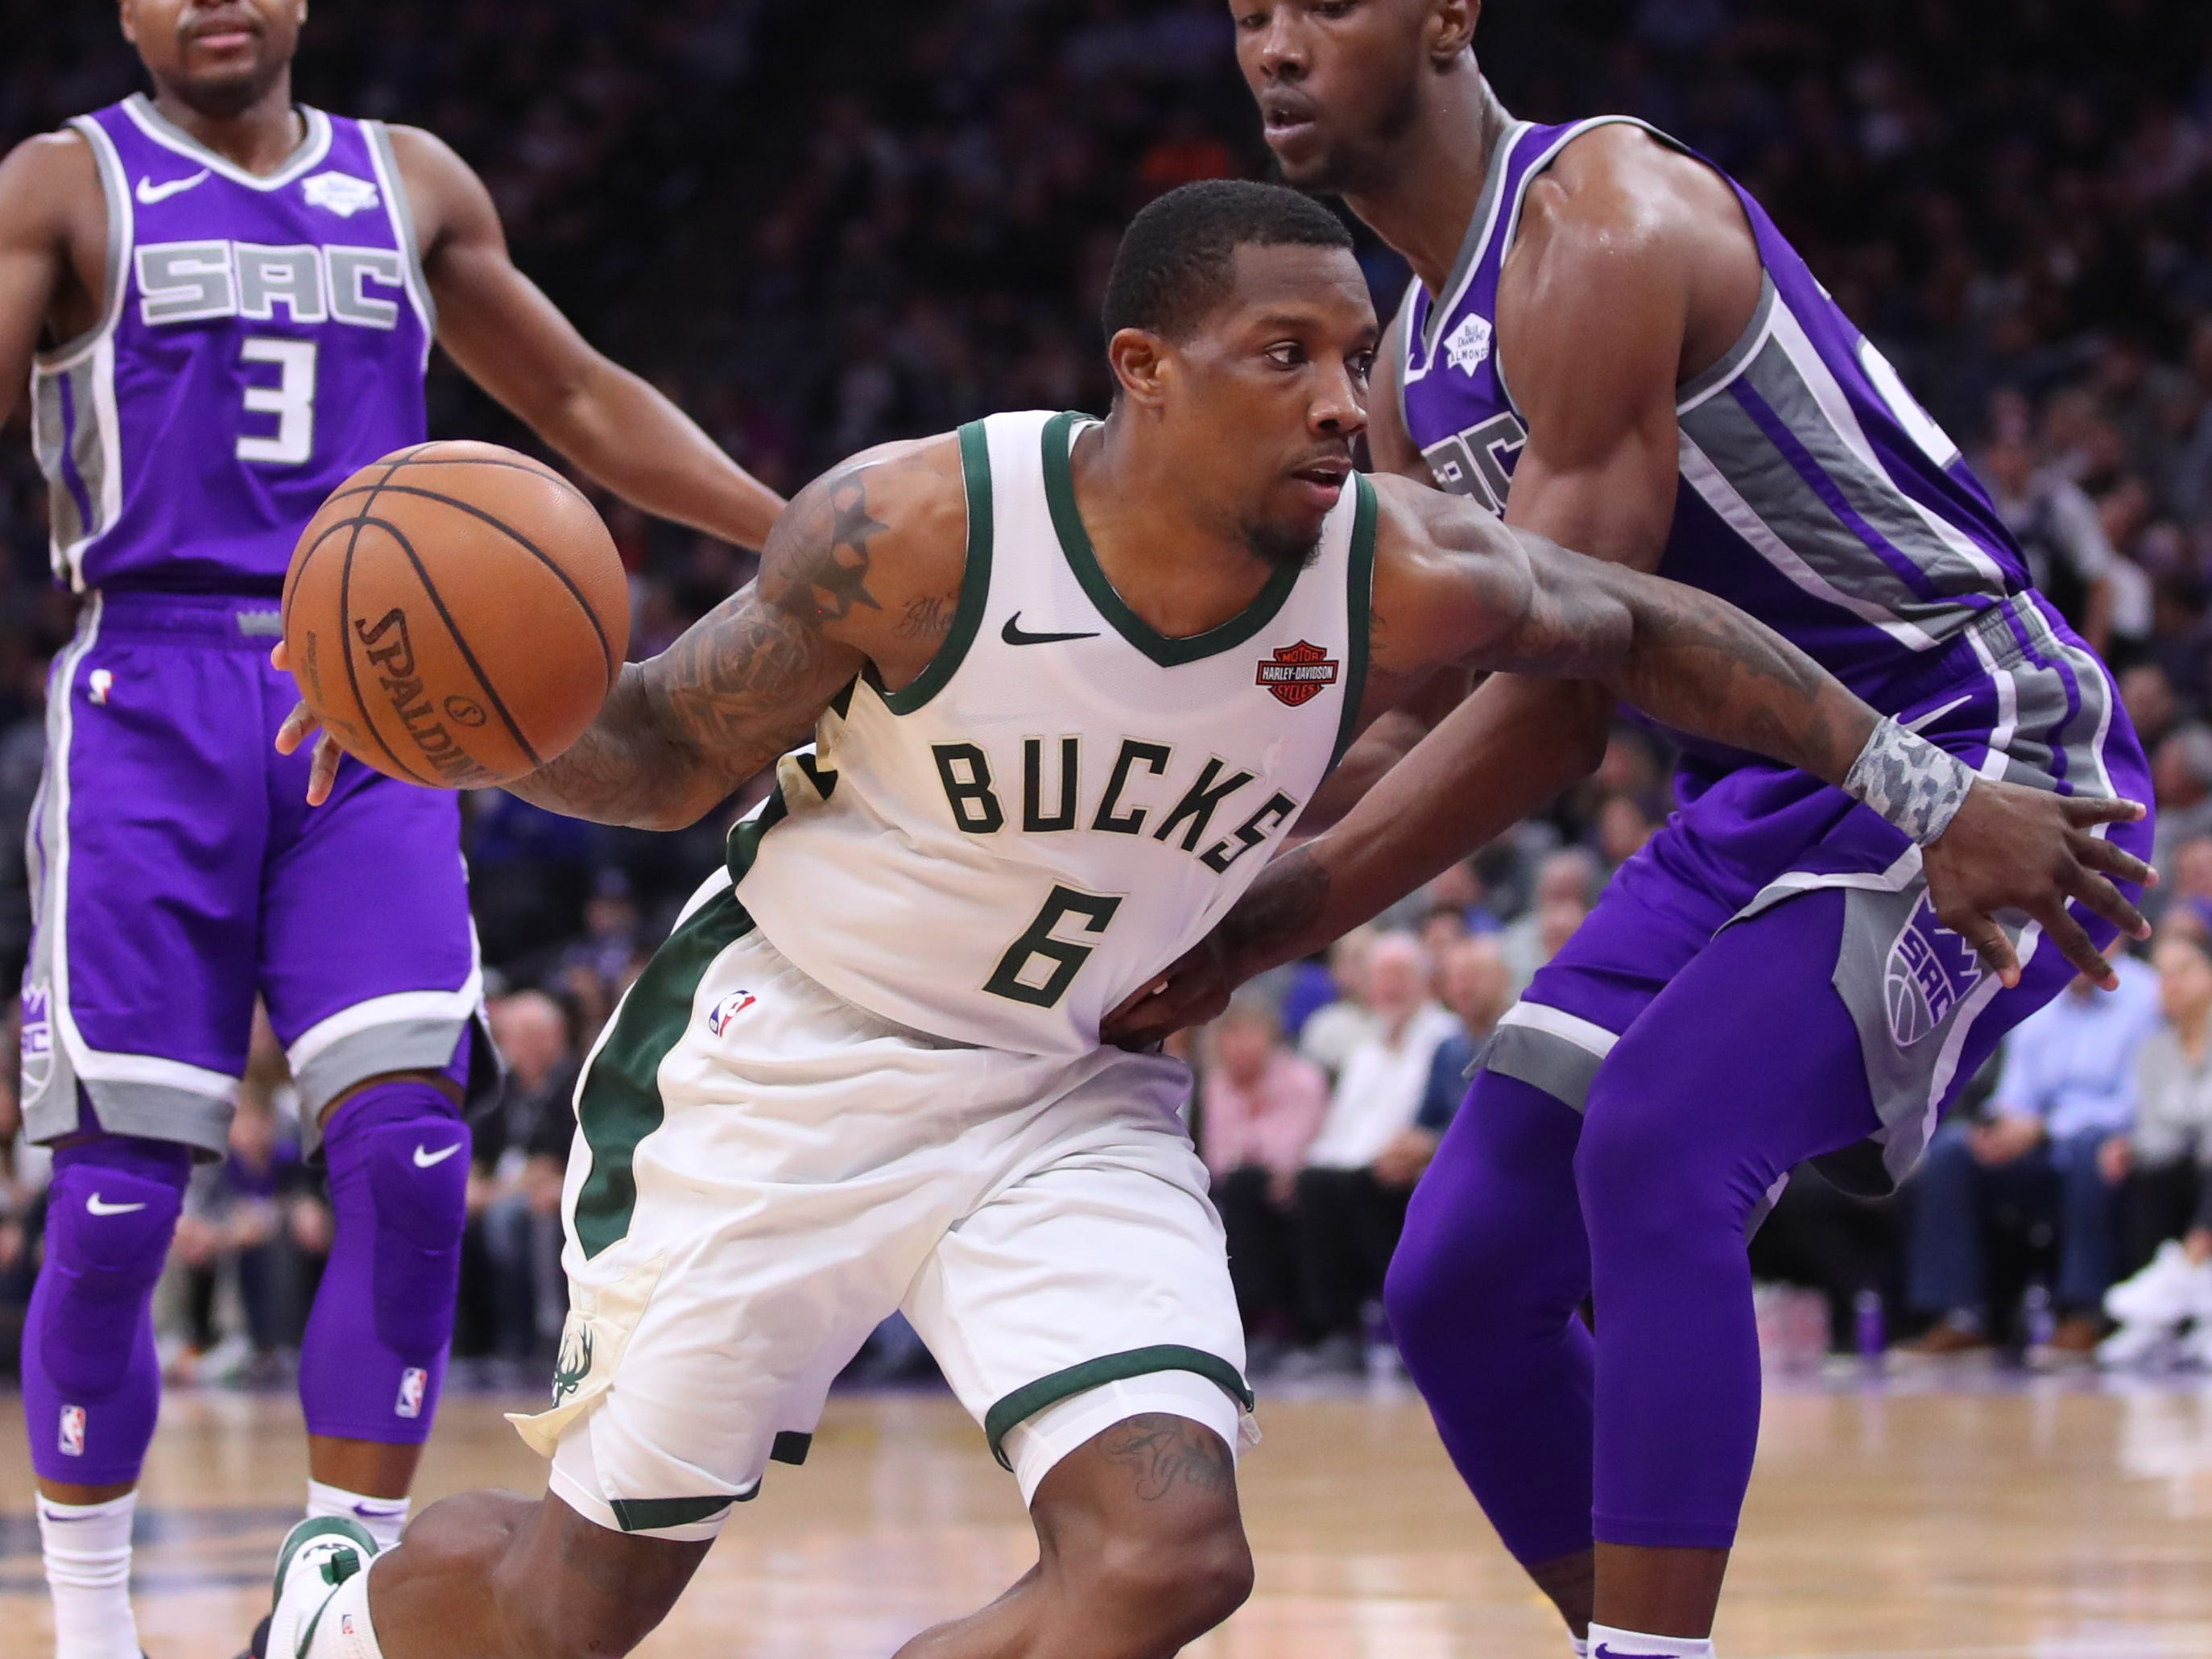 89. Eric Bledsoe, Bucks (Feb. 27): 26 points, 13 assists, 12 rebounds in 141-140 win over Kings.